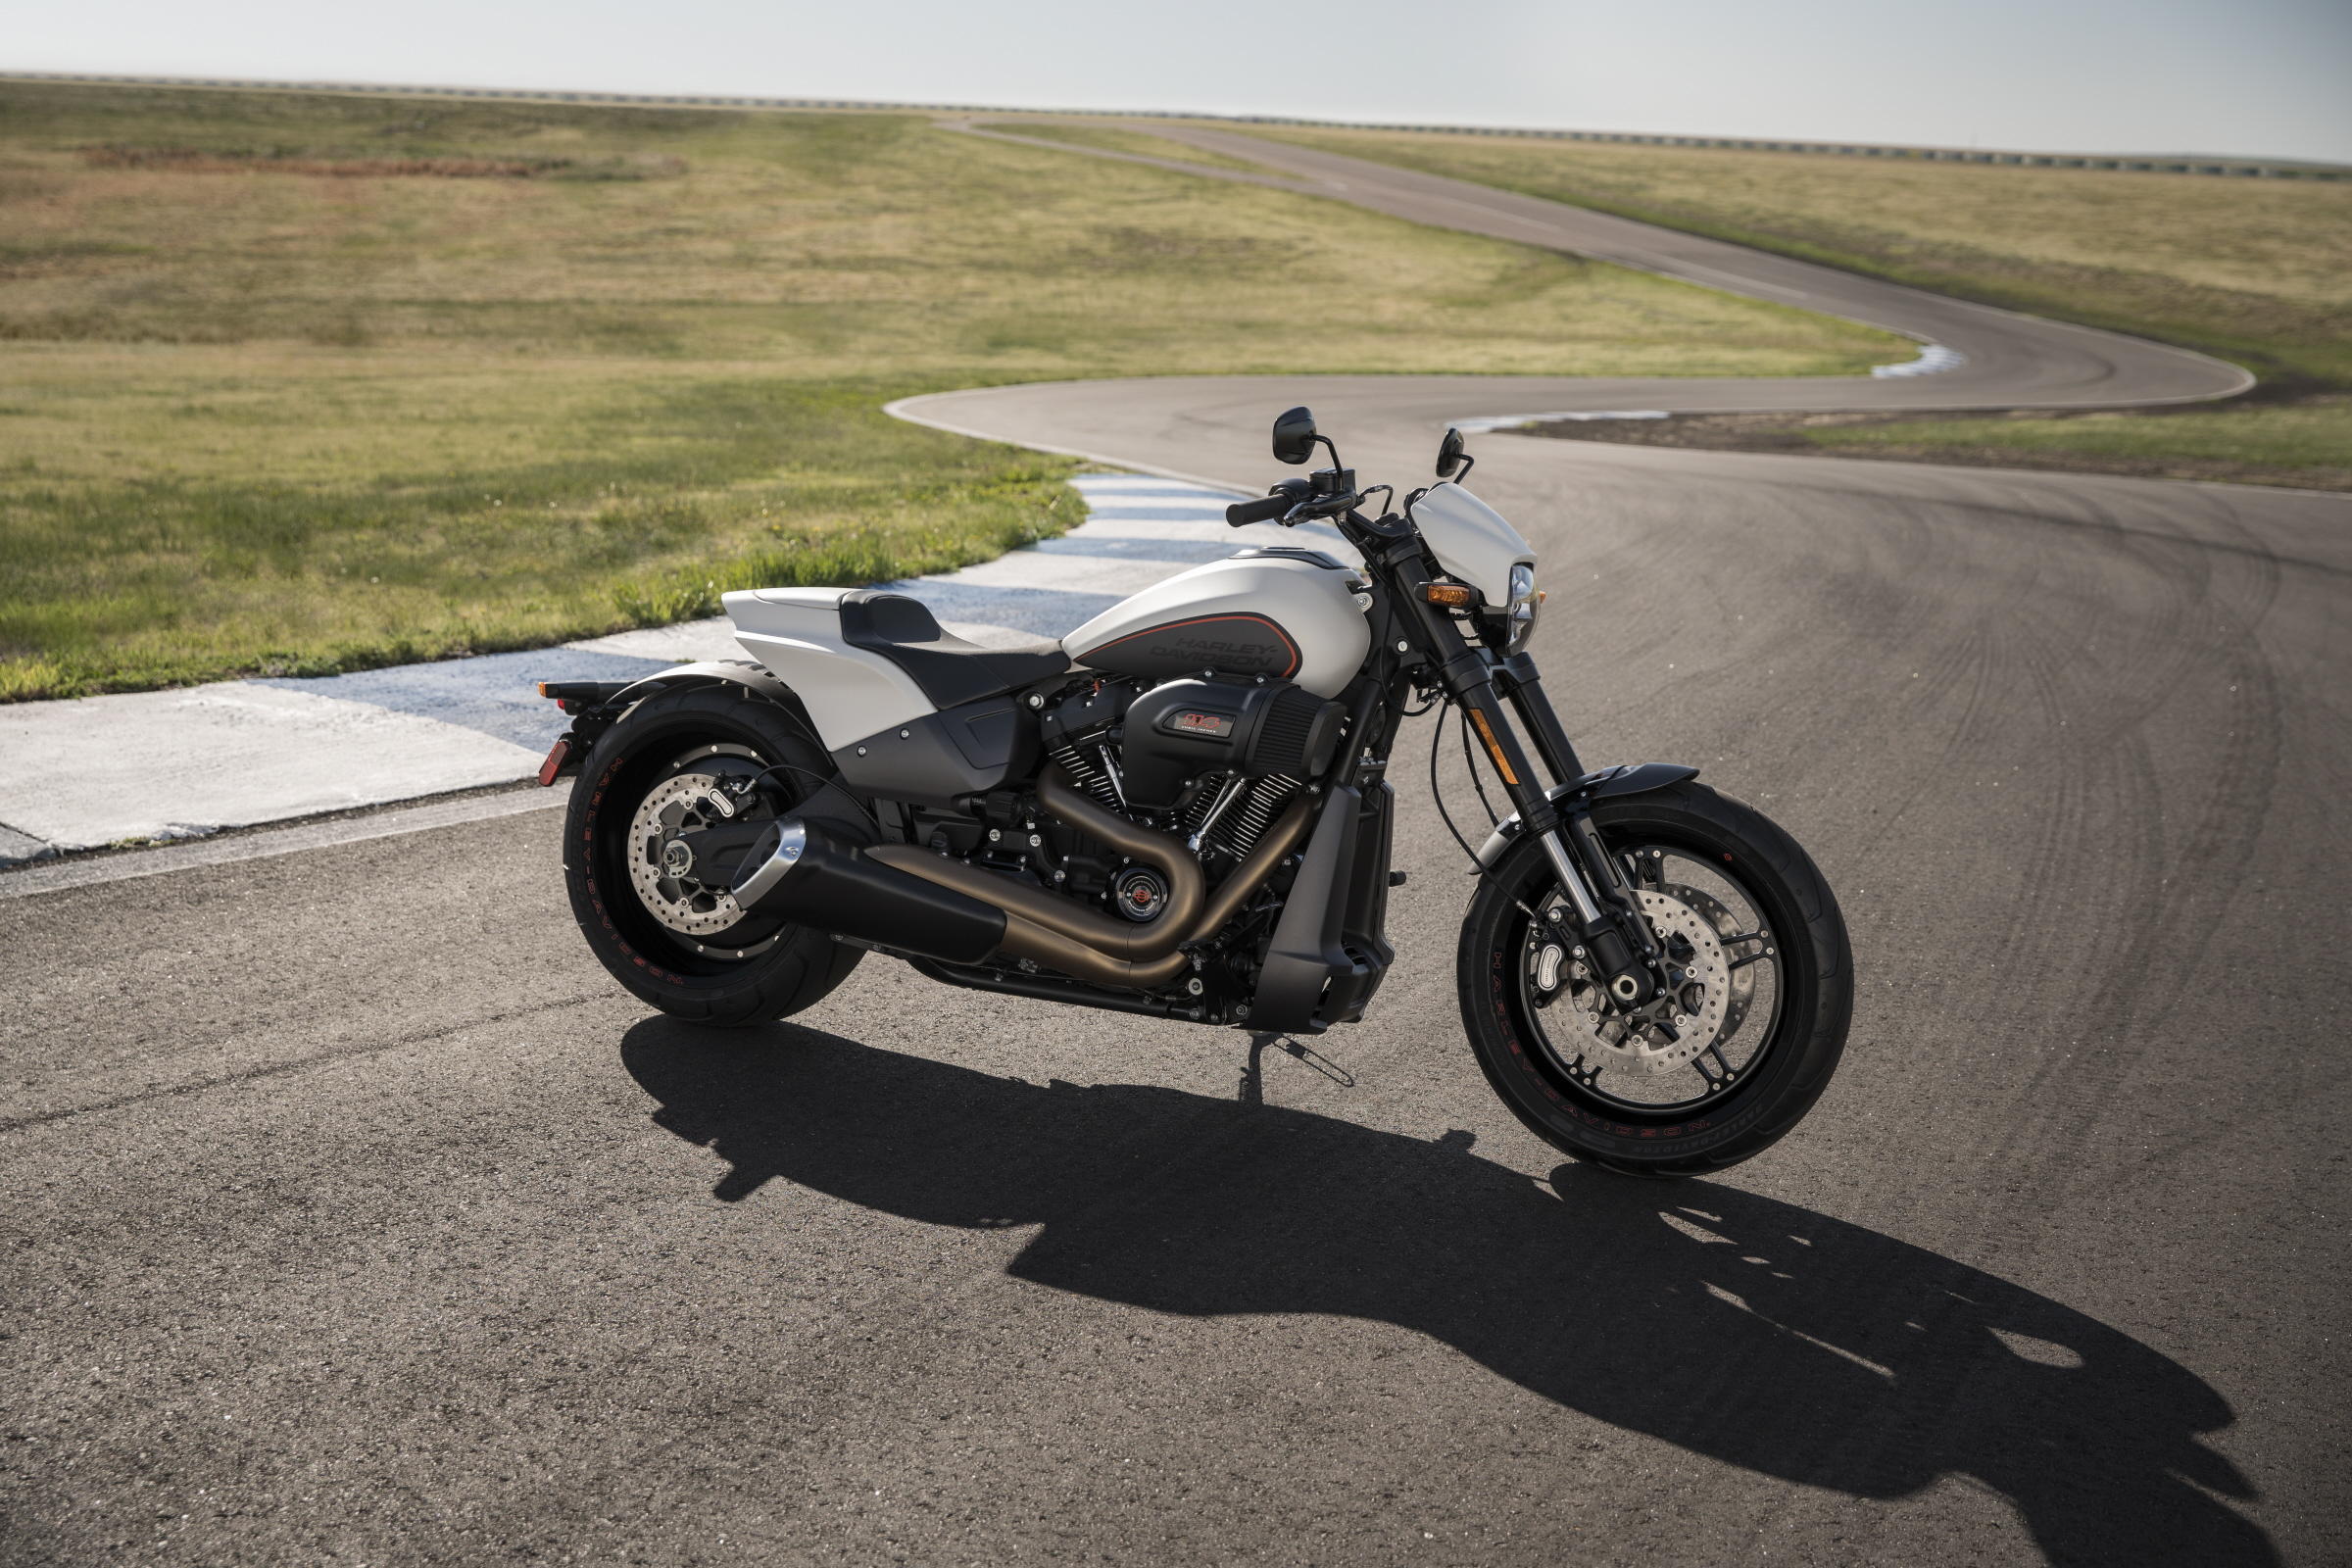 2019 Harley Davidson Fxdr 114 Guide � Total Motorcycle: Harley-Davidson Introduces New FXDR 114 Muscle Bike